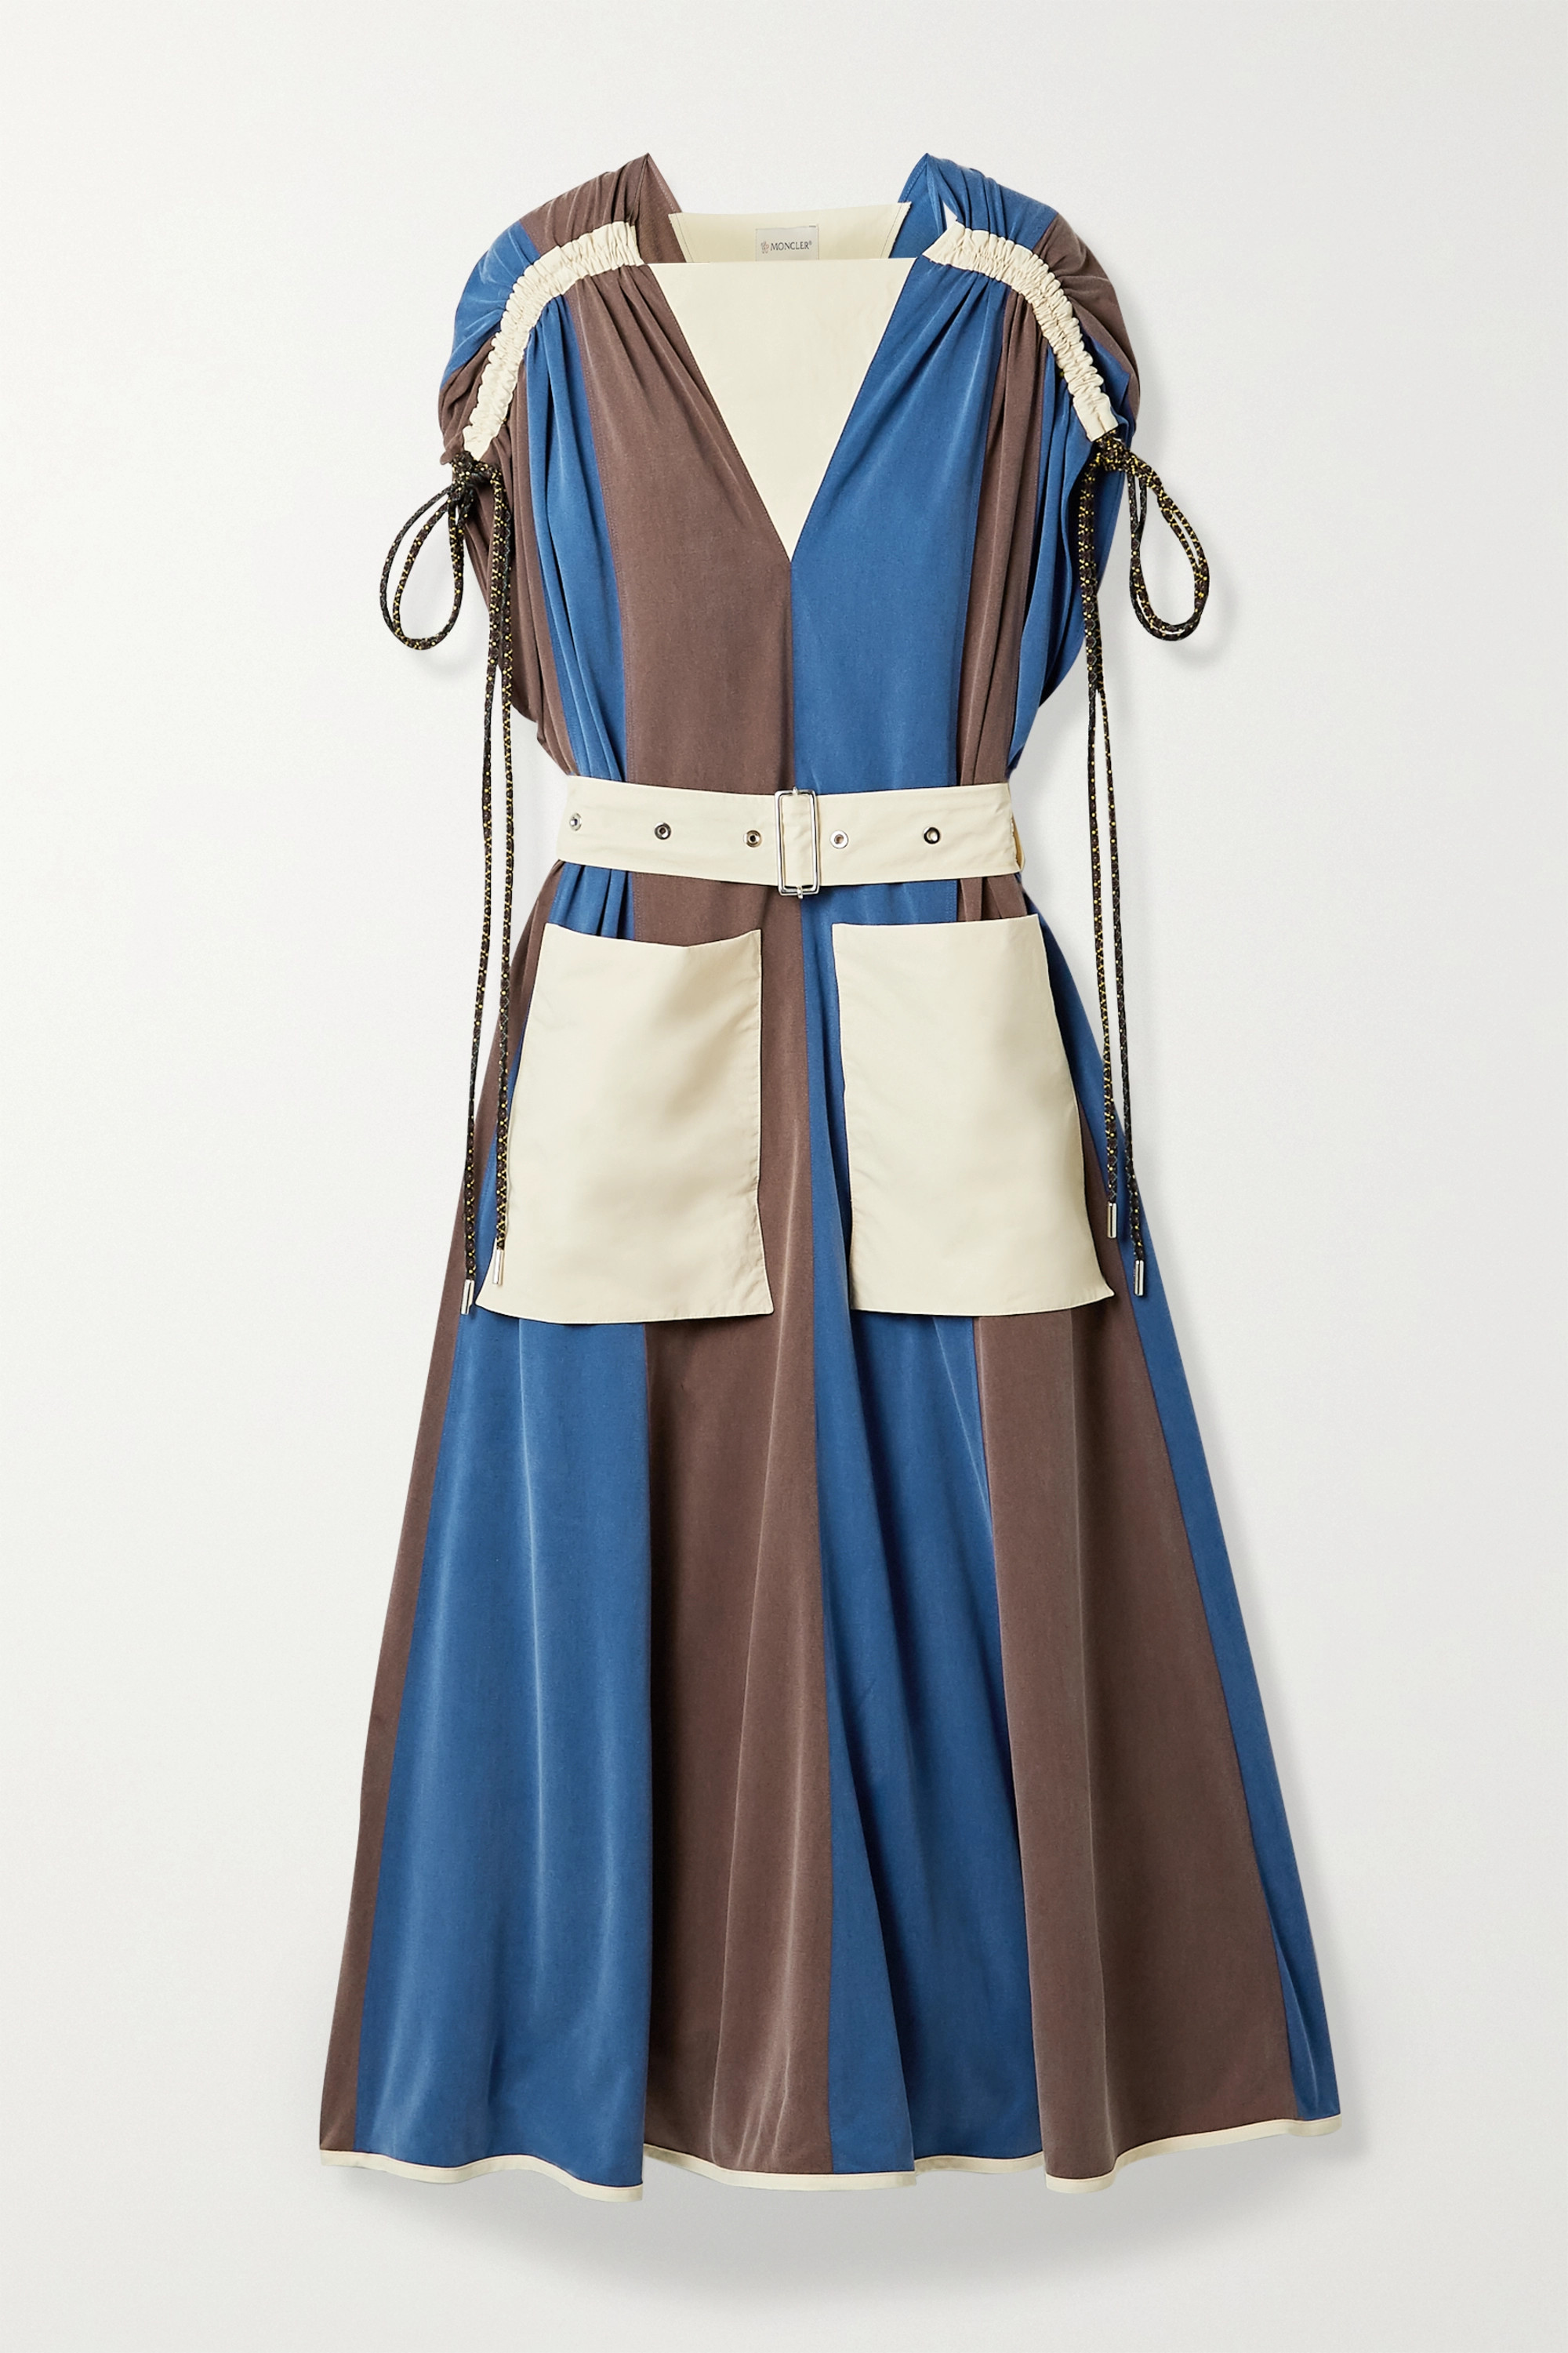 Moncler Genius + 2 Moncler 1952 Abito paneled shell and washed cupro-blend midi dress